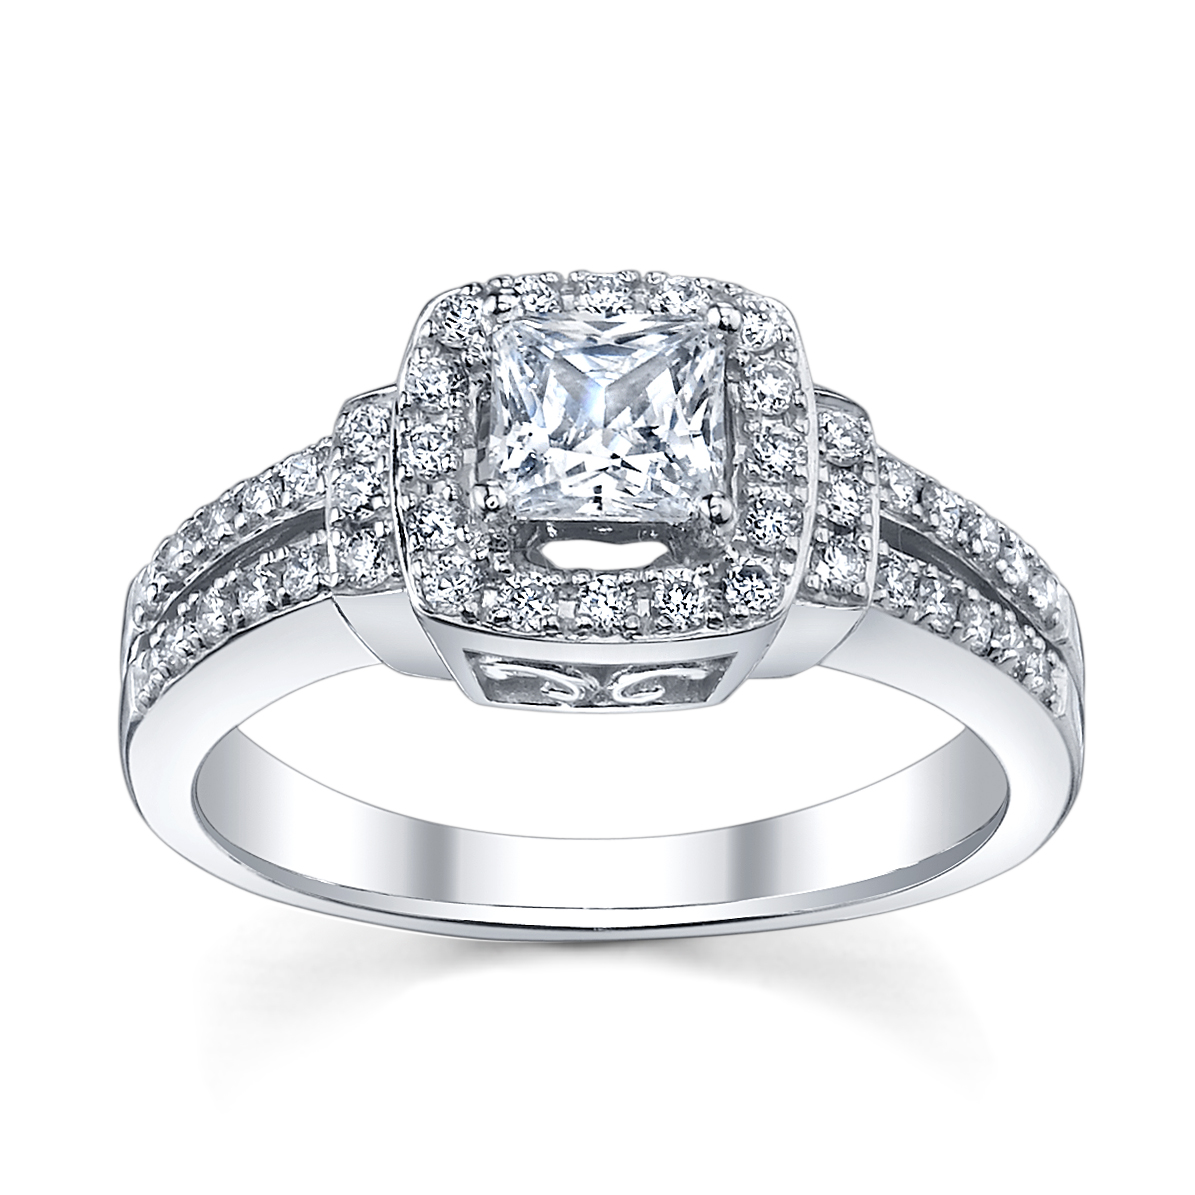 size and rings online wedding diamond engagement simple tumblr vows canada of box designs band but nice ring full